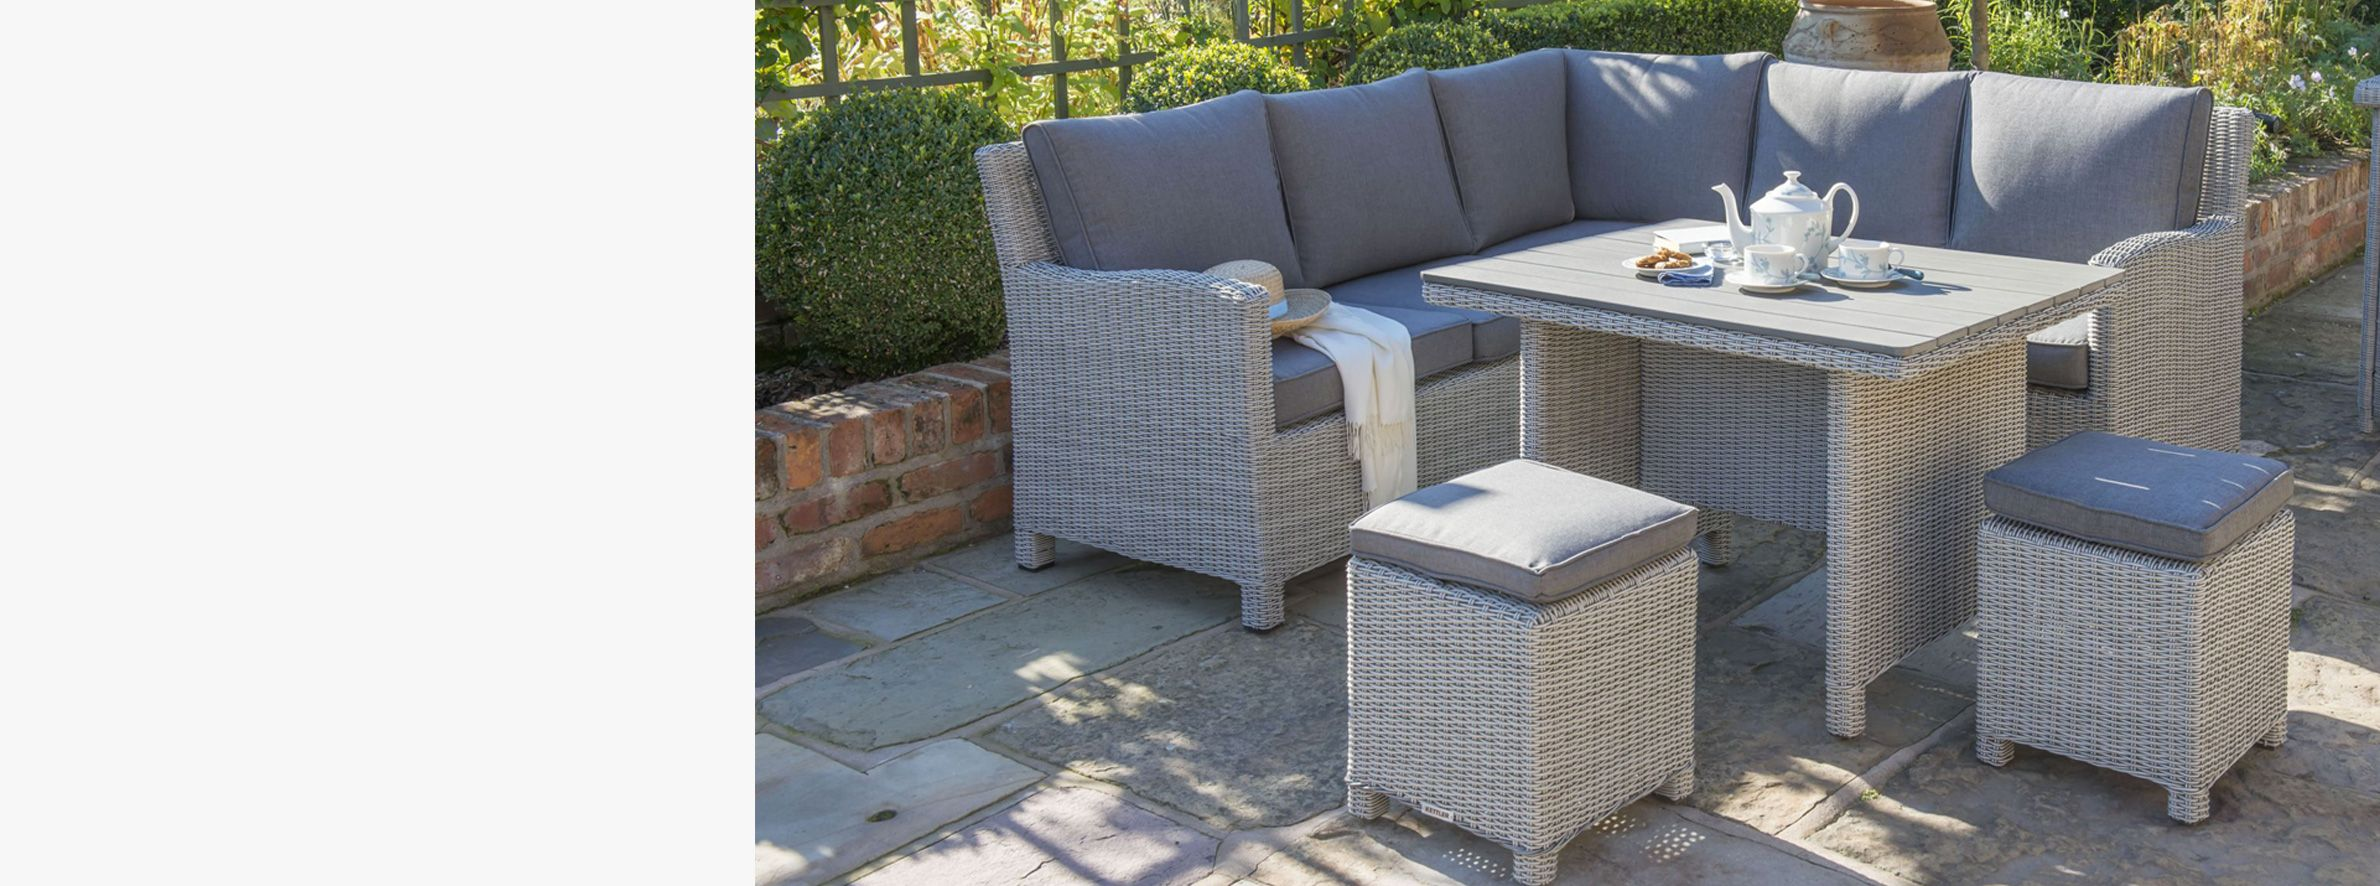 Outdoor Garden Table and Chair Sets and Ranges | John Lewis